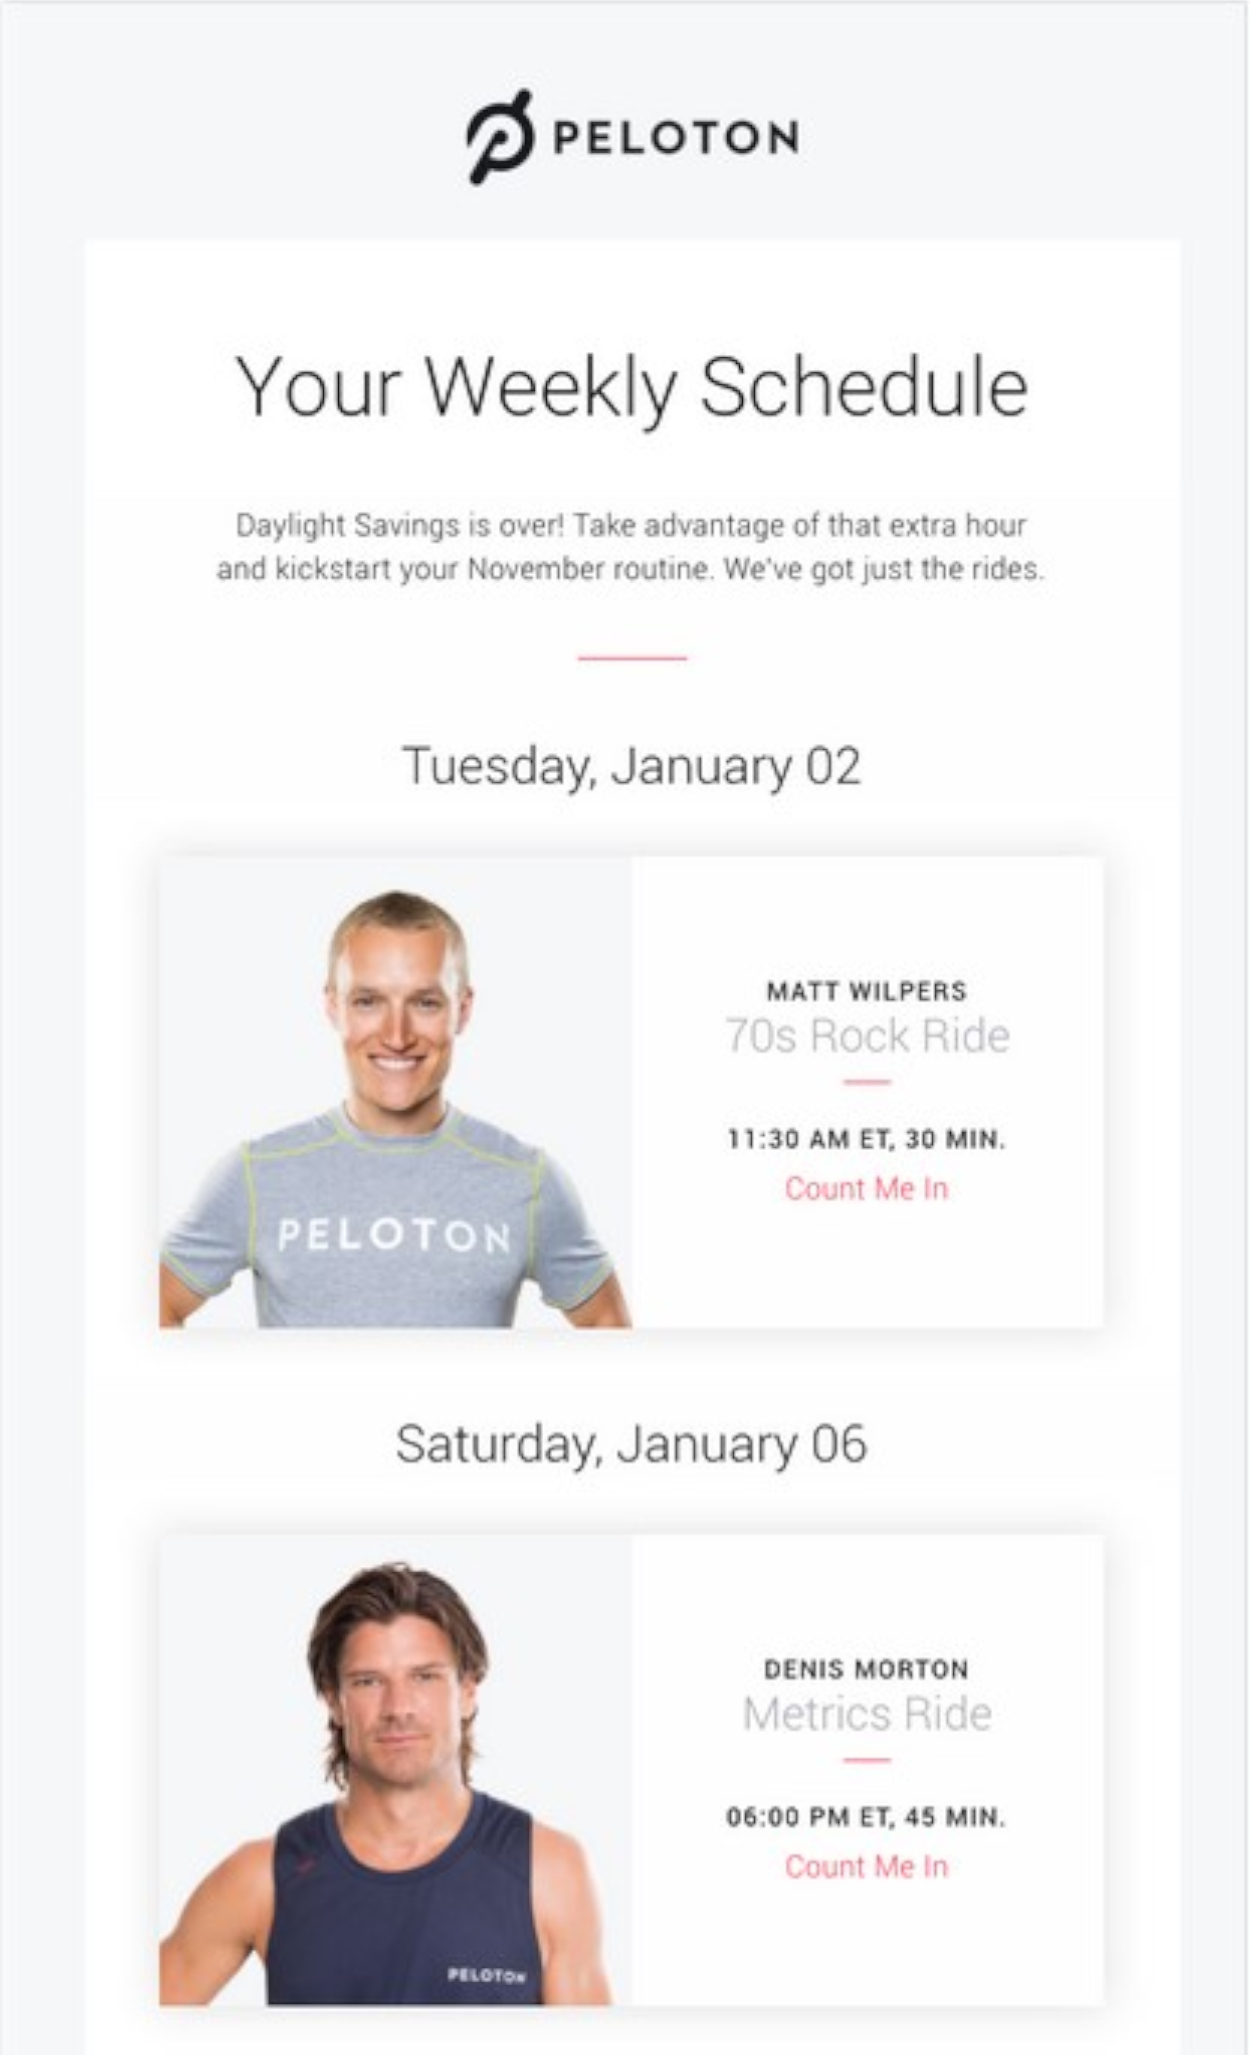 Encourage attendees and subscribers to check out other webinars you host.